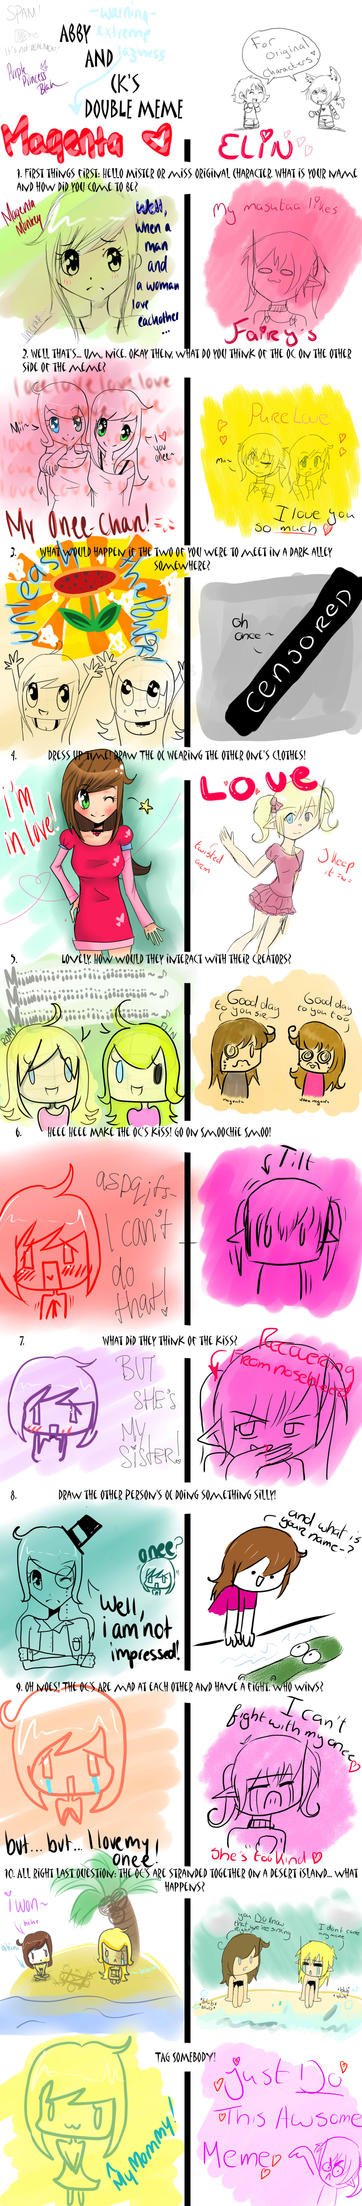 Double meme with awsome onee by JingelChan